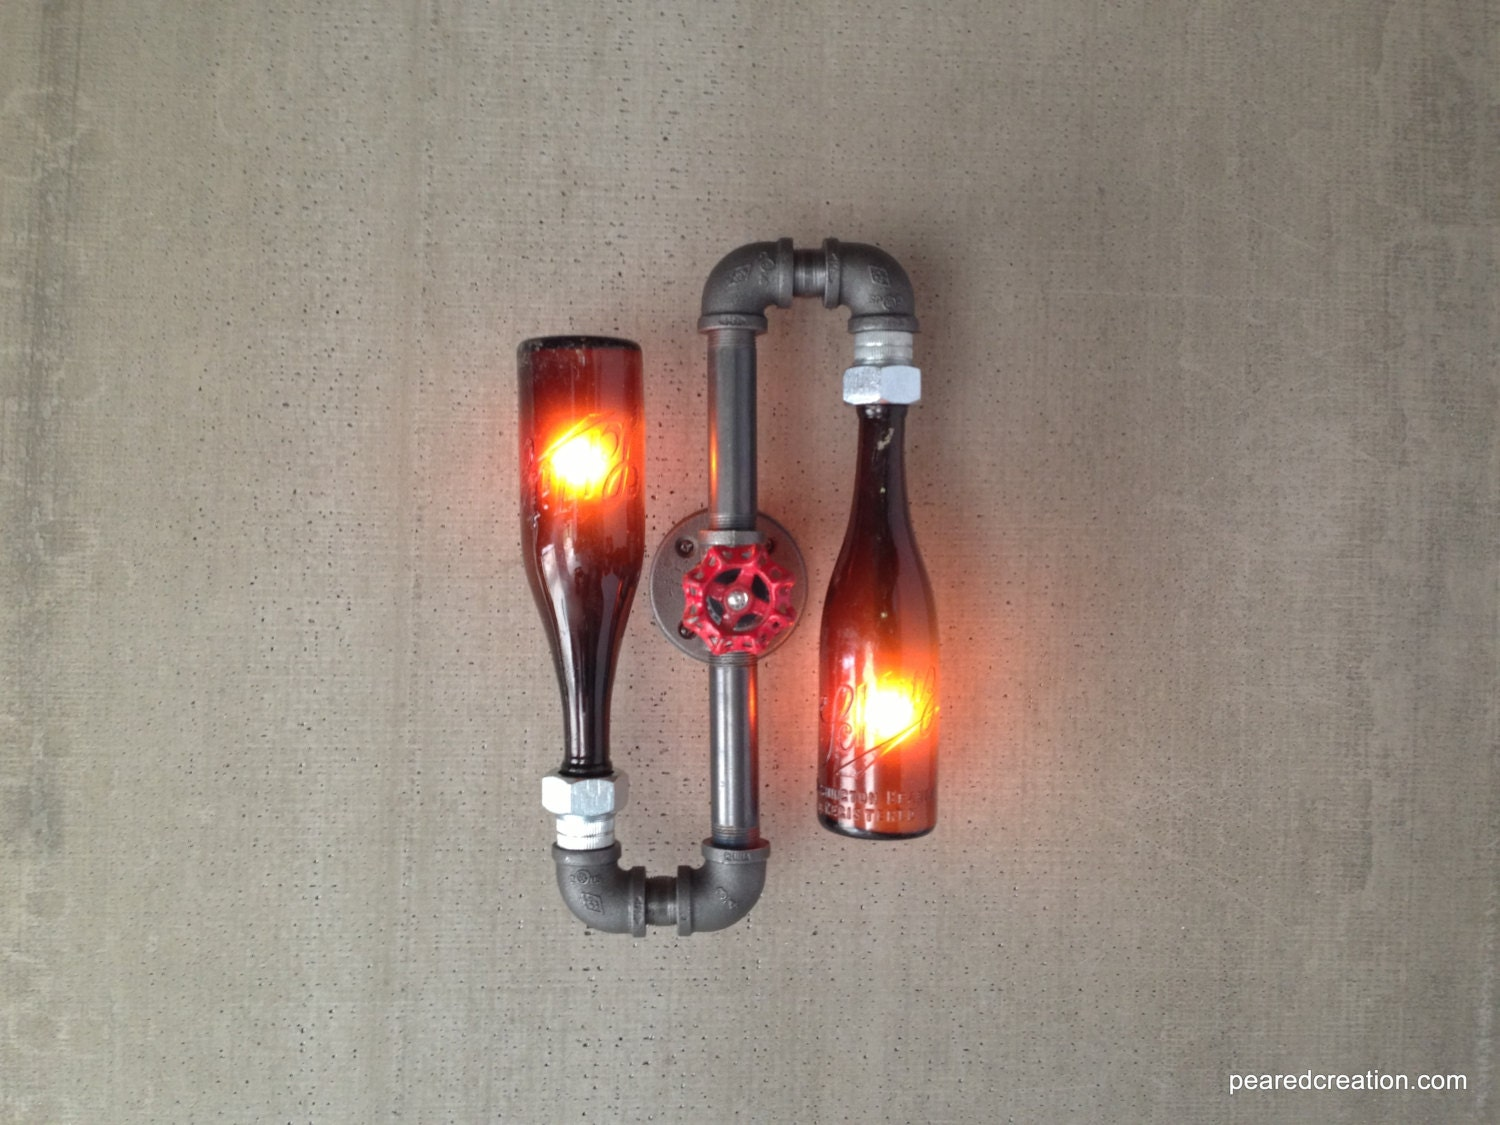 beer bottle sconce industrial lighting steampunk lamps. Black Bedroom Furniture Sets. Home Design Ideas